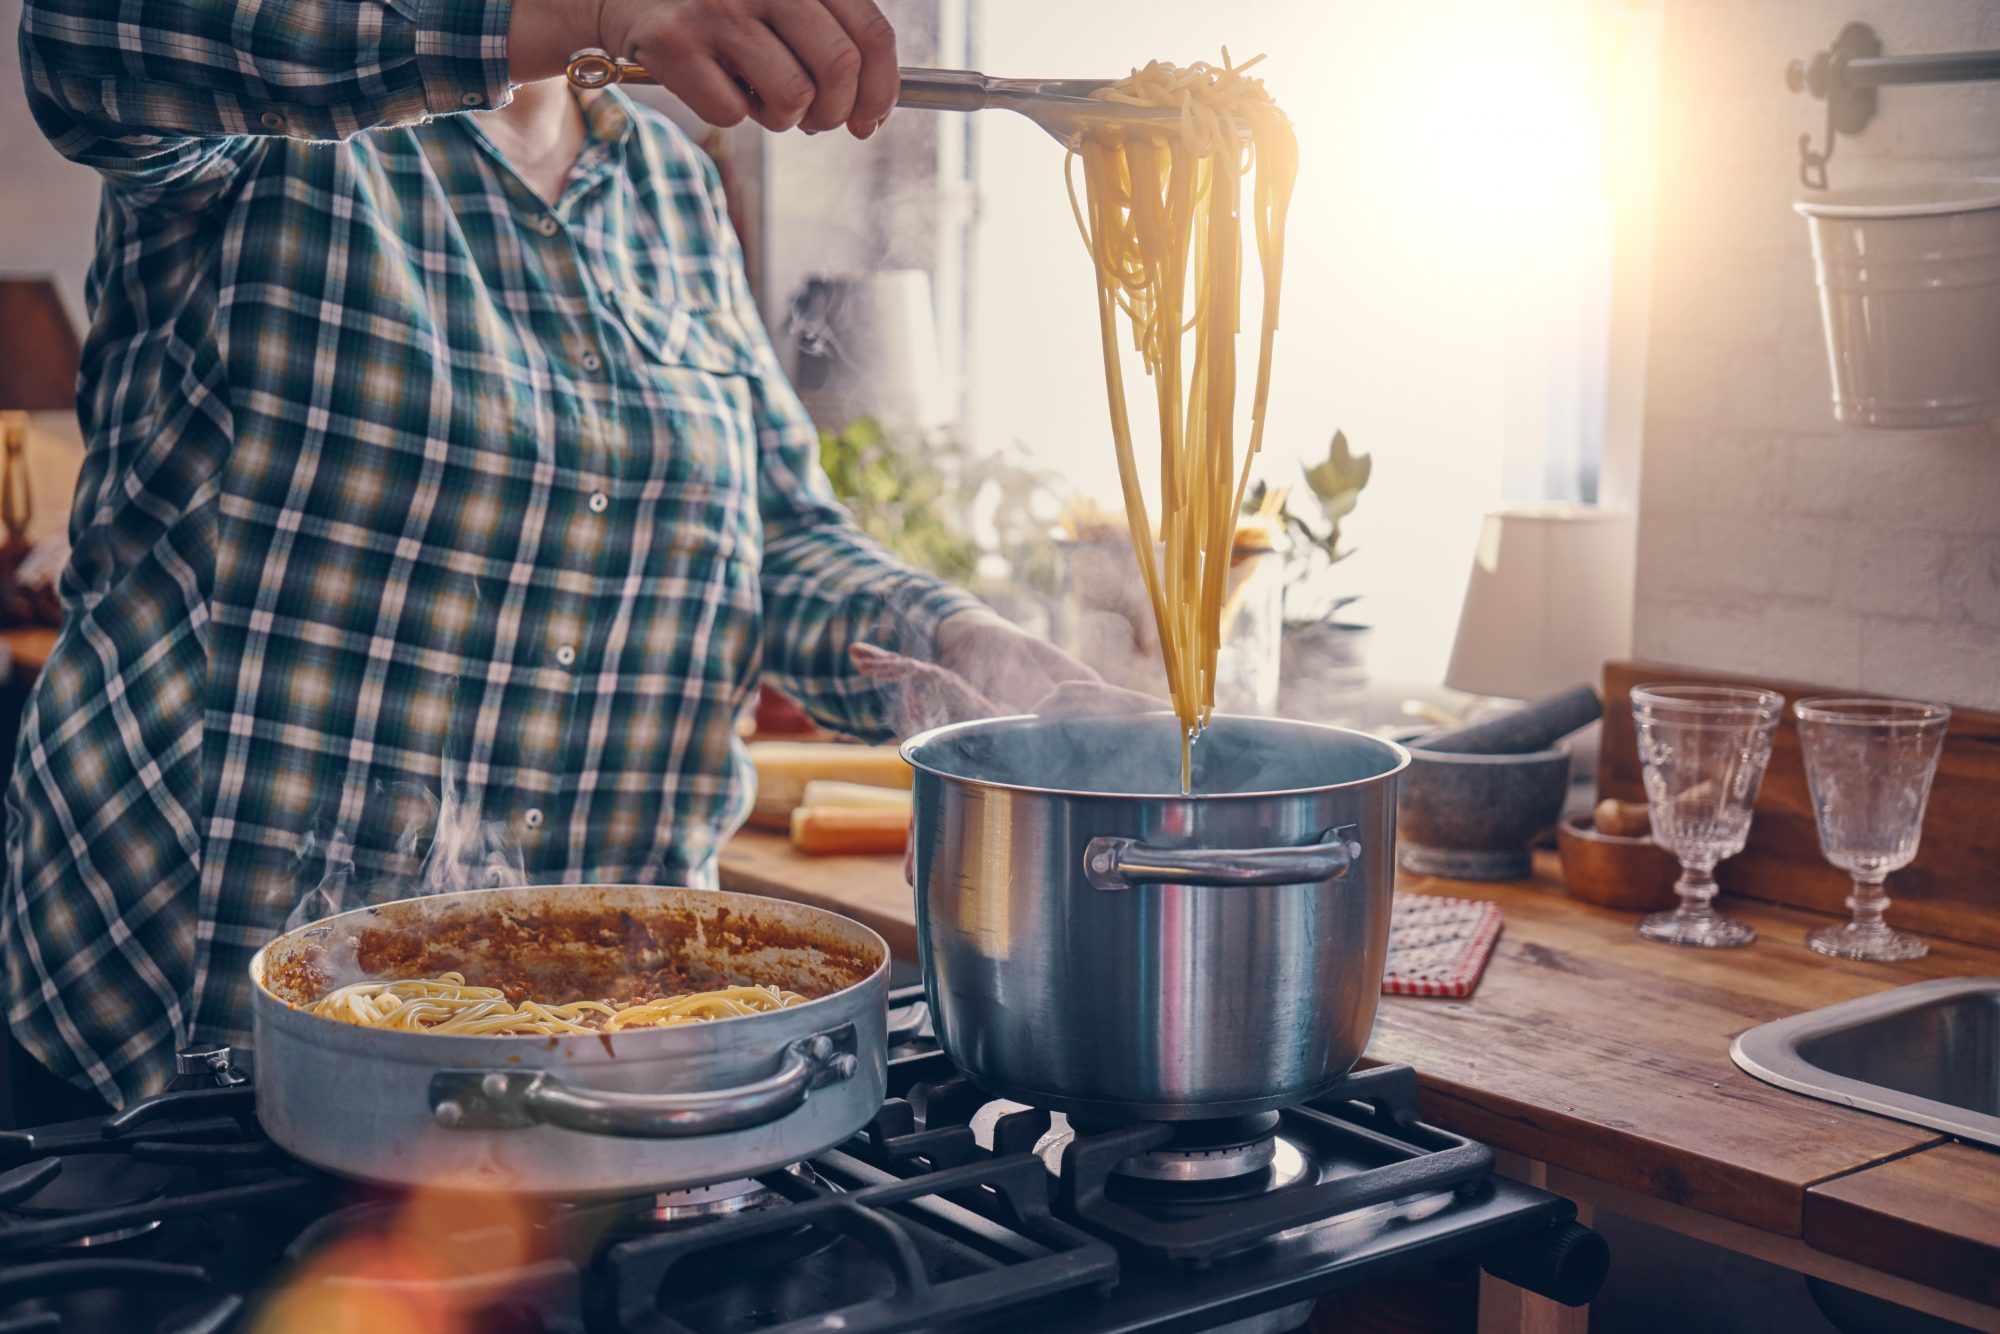 17 Cooking Tips Everyone Should Know By Heart | MyRecipes